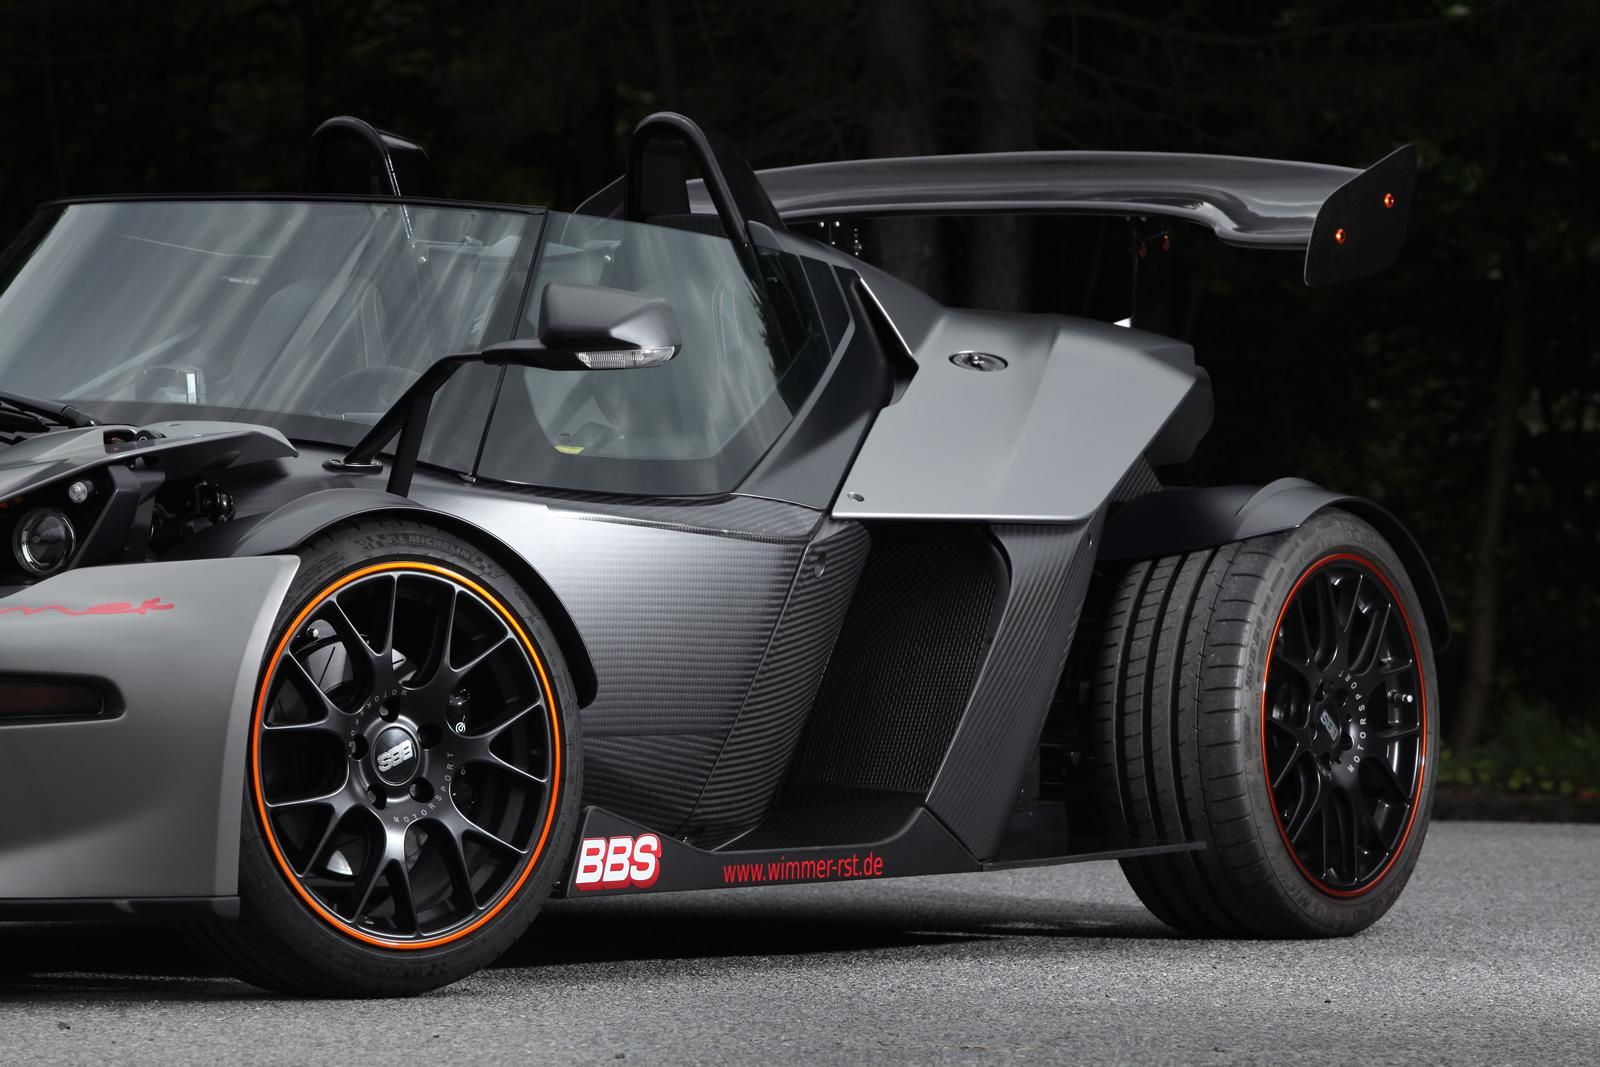 Wimmer Ktm X Bow